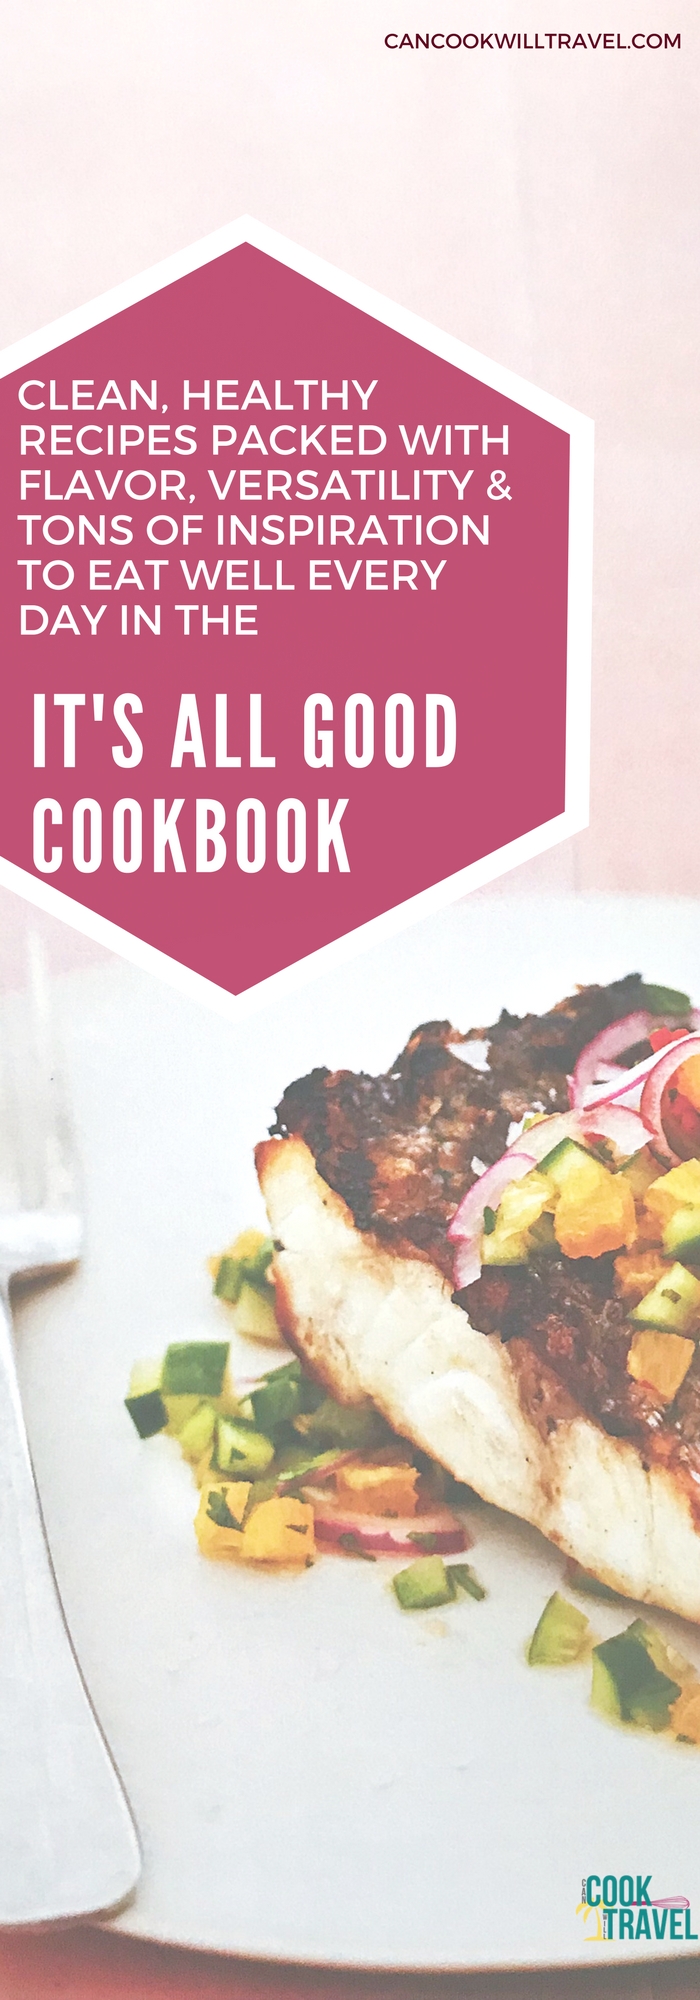 It's All Good Cookbook_Tall